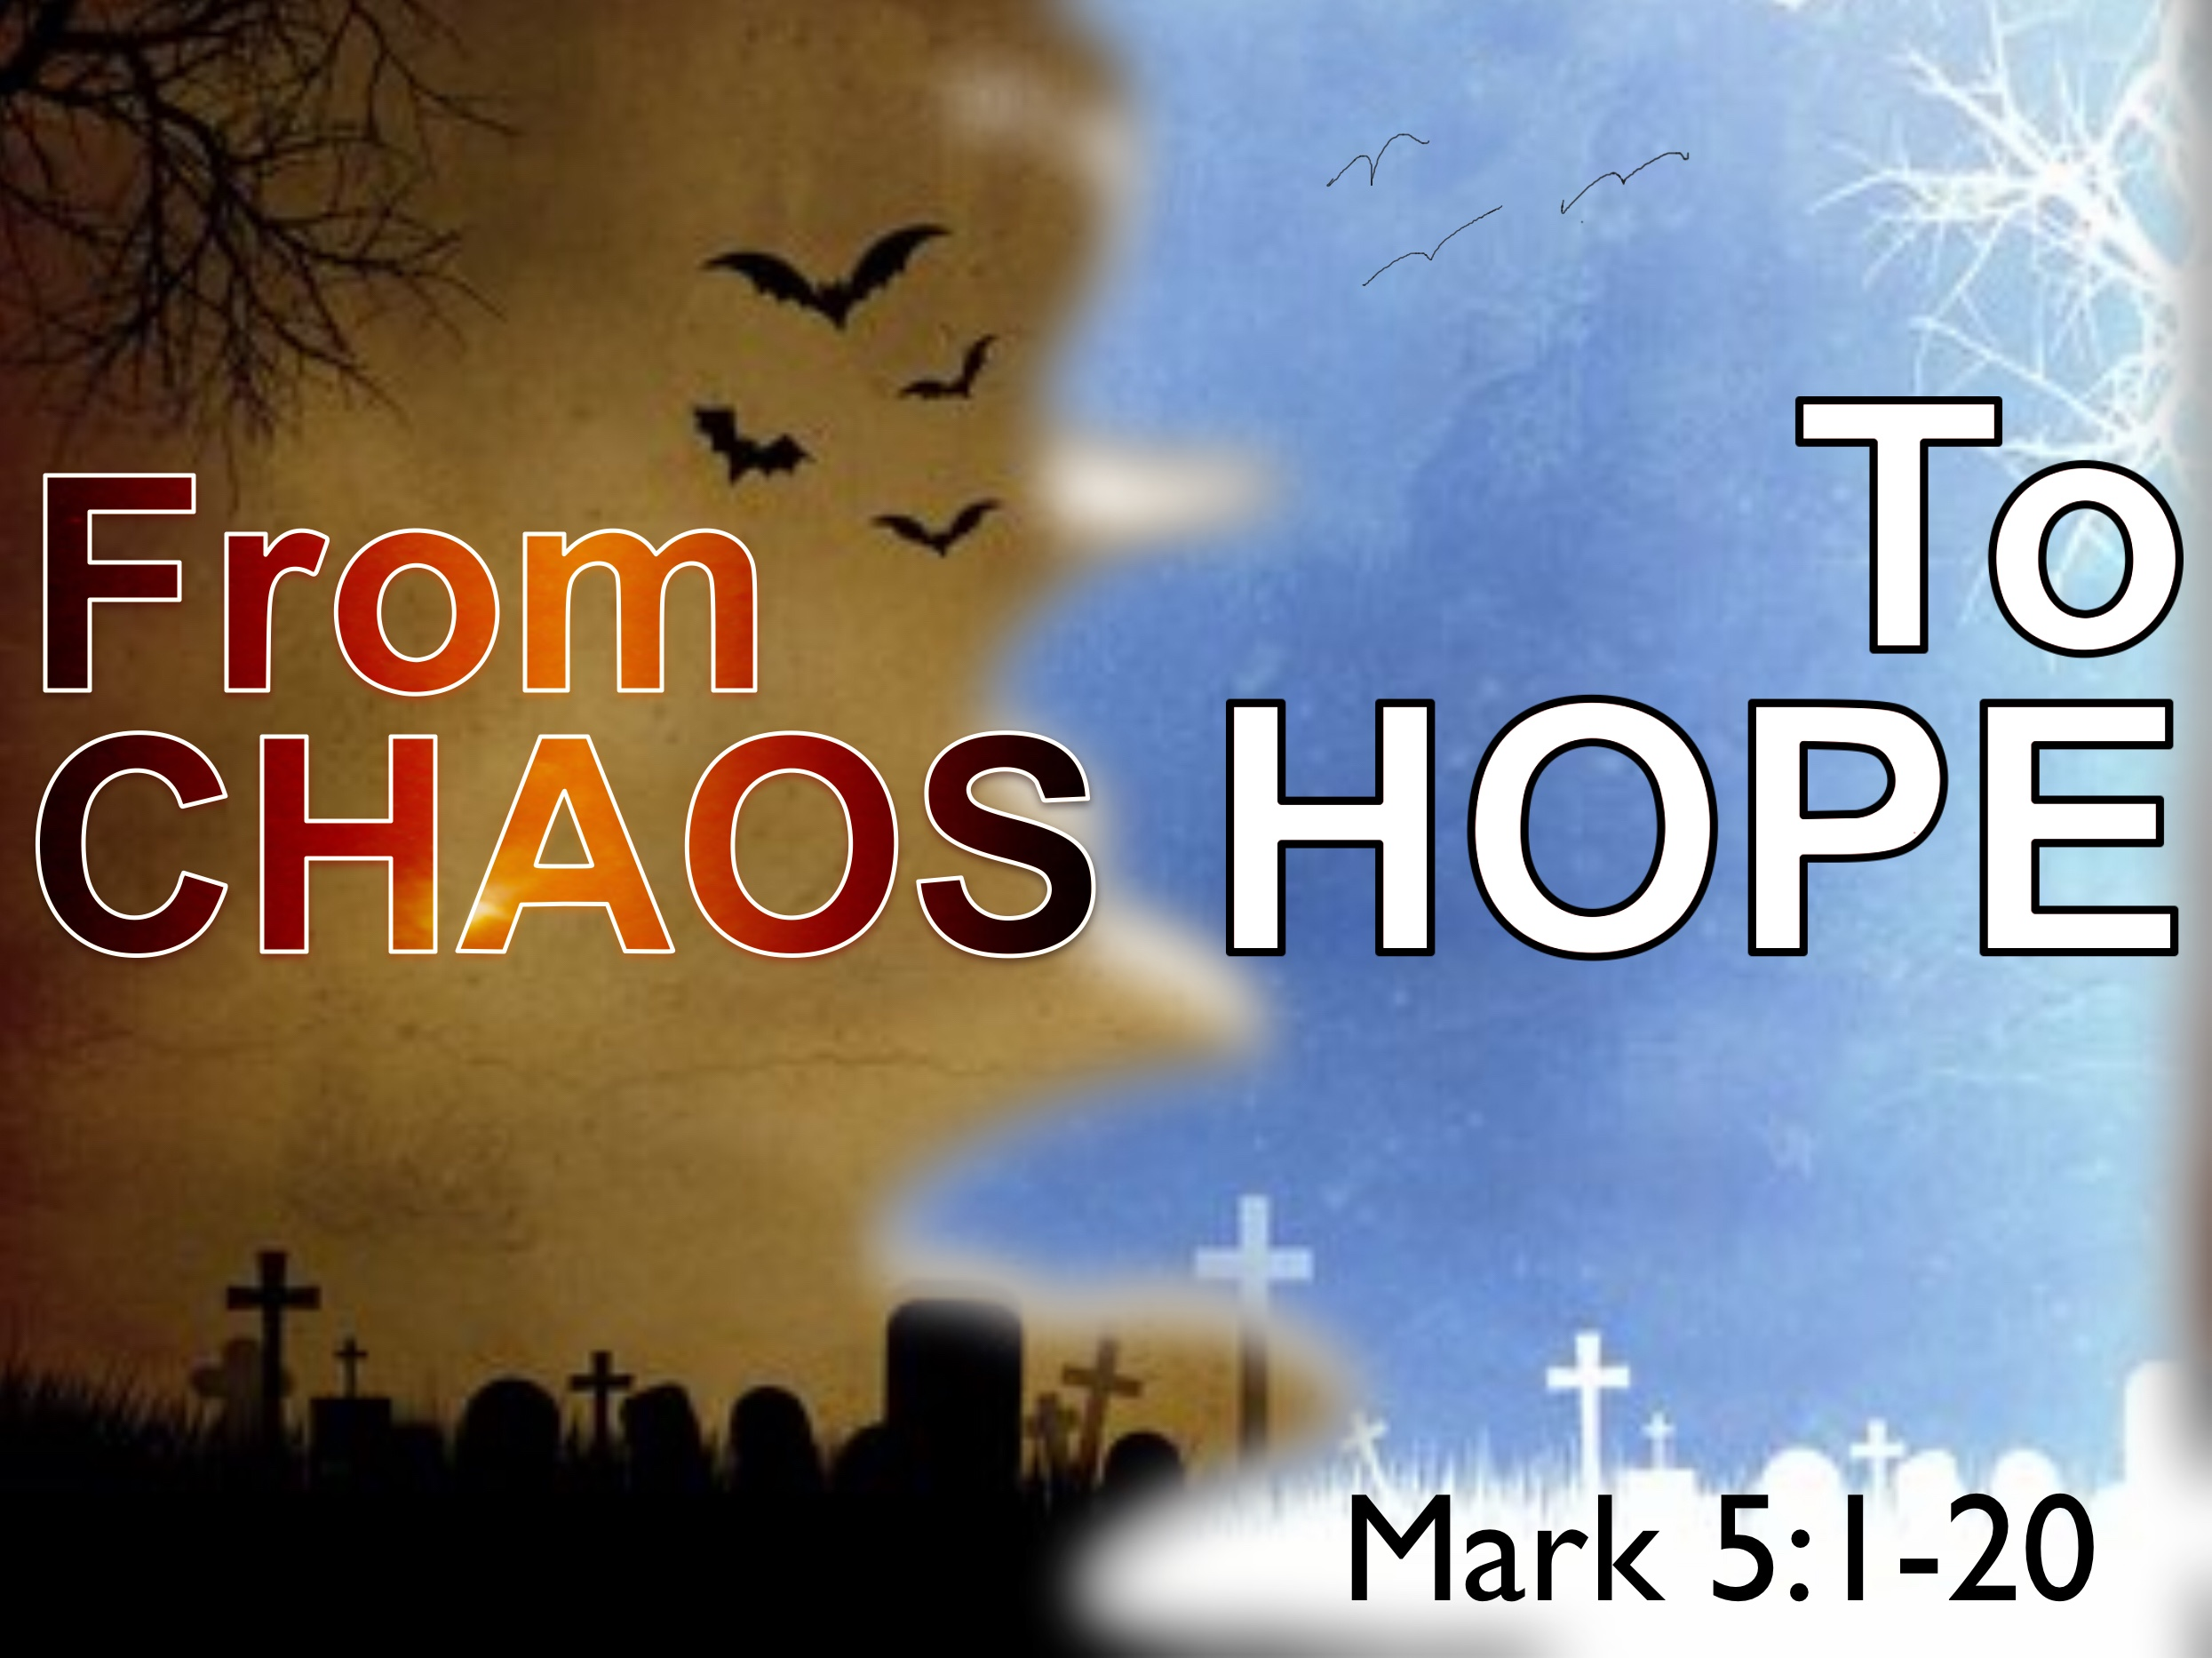 Find hope here at Cold Spring Church